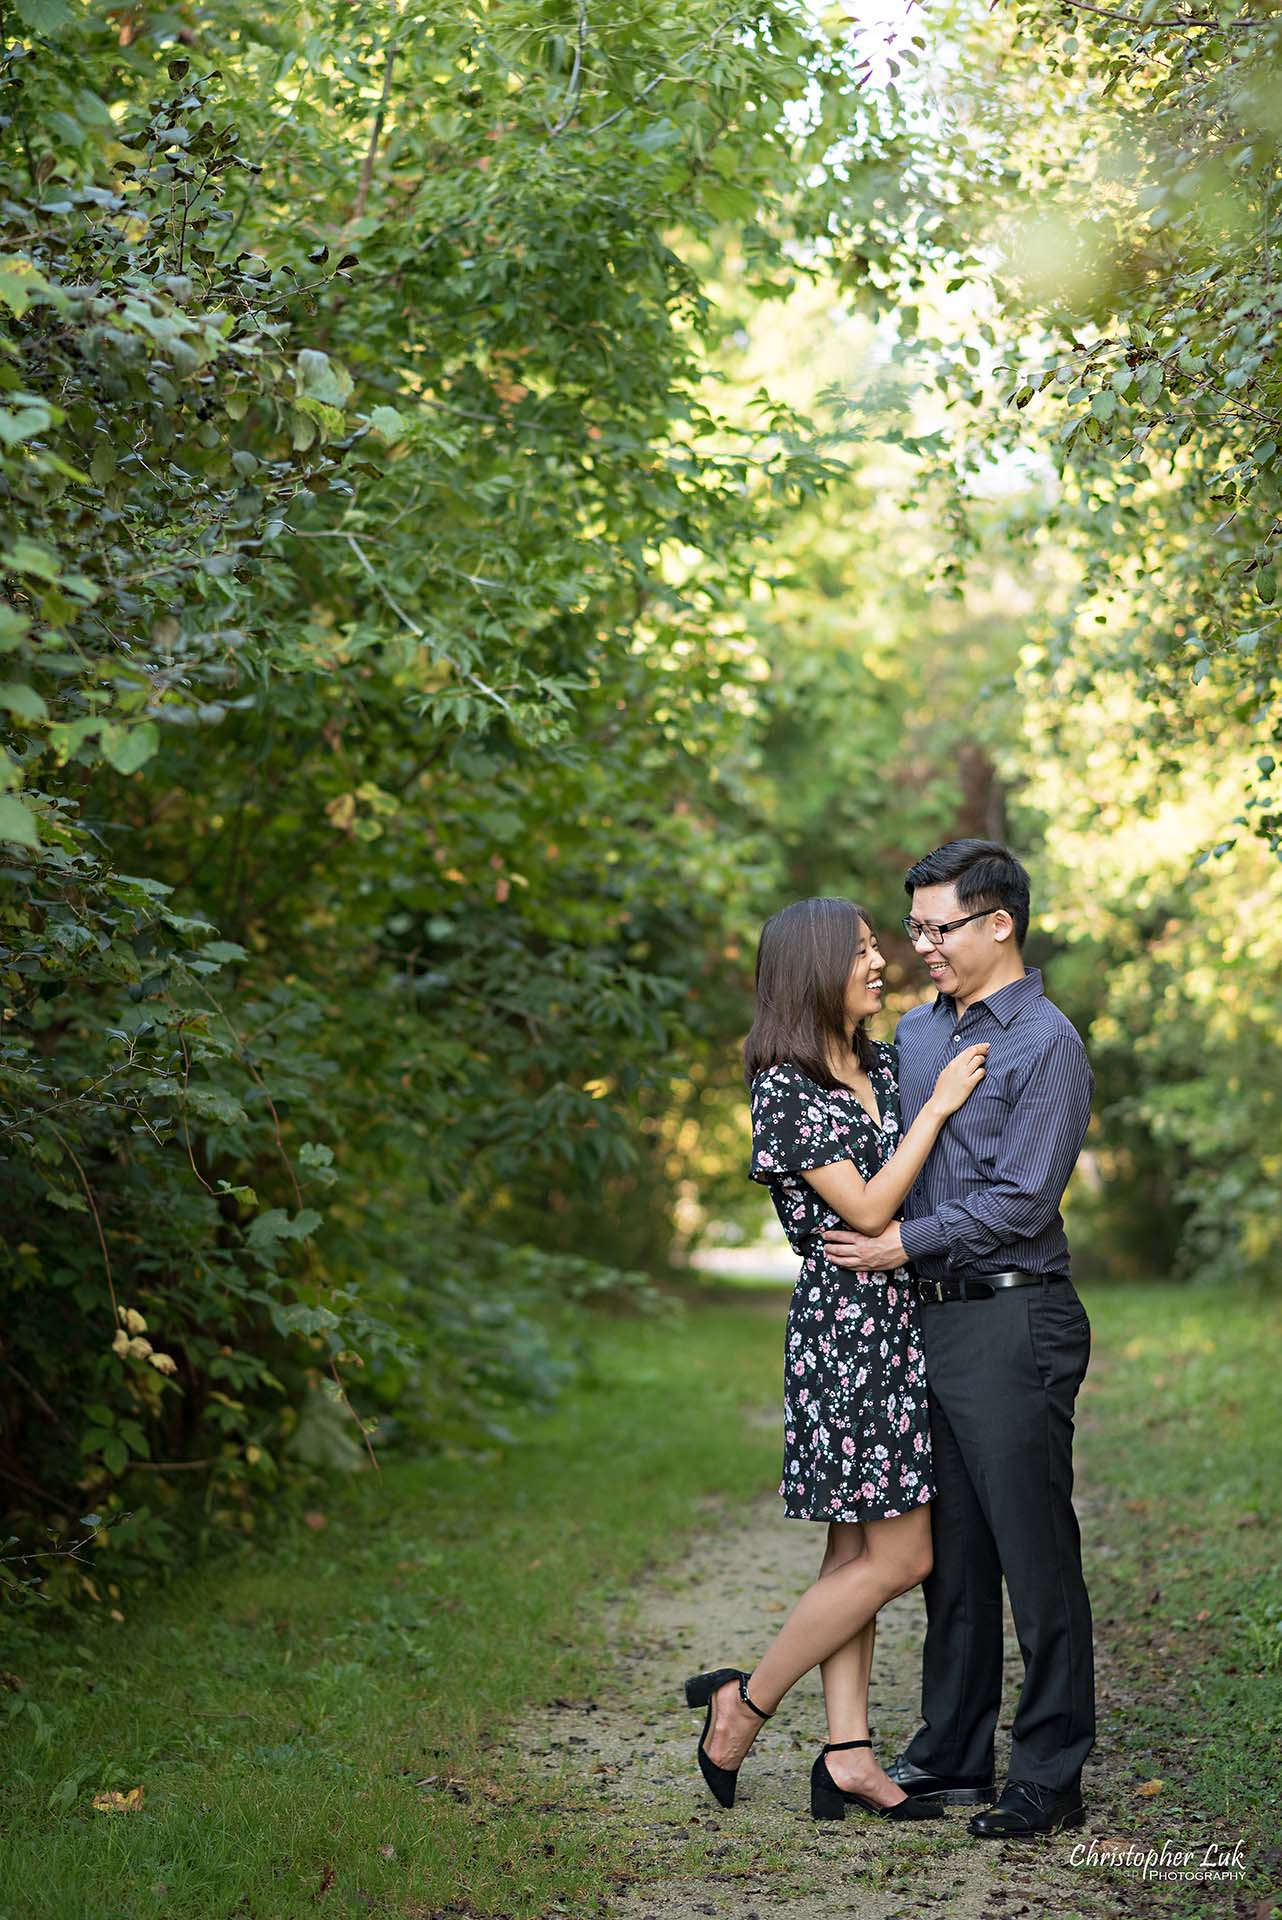 Christopher Luk Toronto Wedding Photographer - Richmond Hill Markham York Region Conservation Area Engagement PreWedding Chinese Korean - Natural Candid Photojournalistic Bride Groom Hug Smile